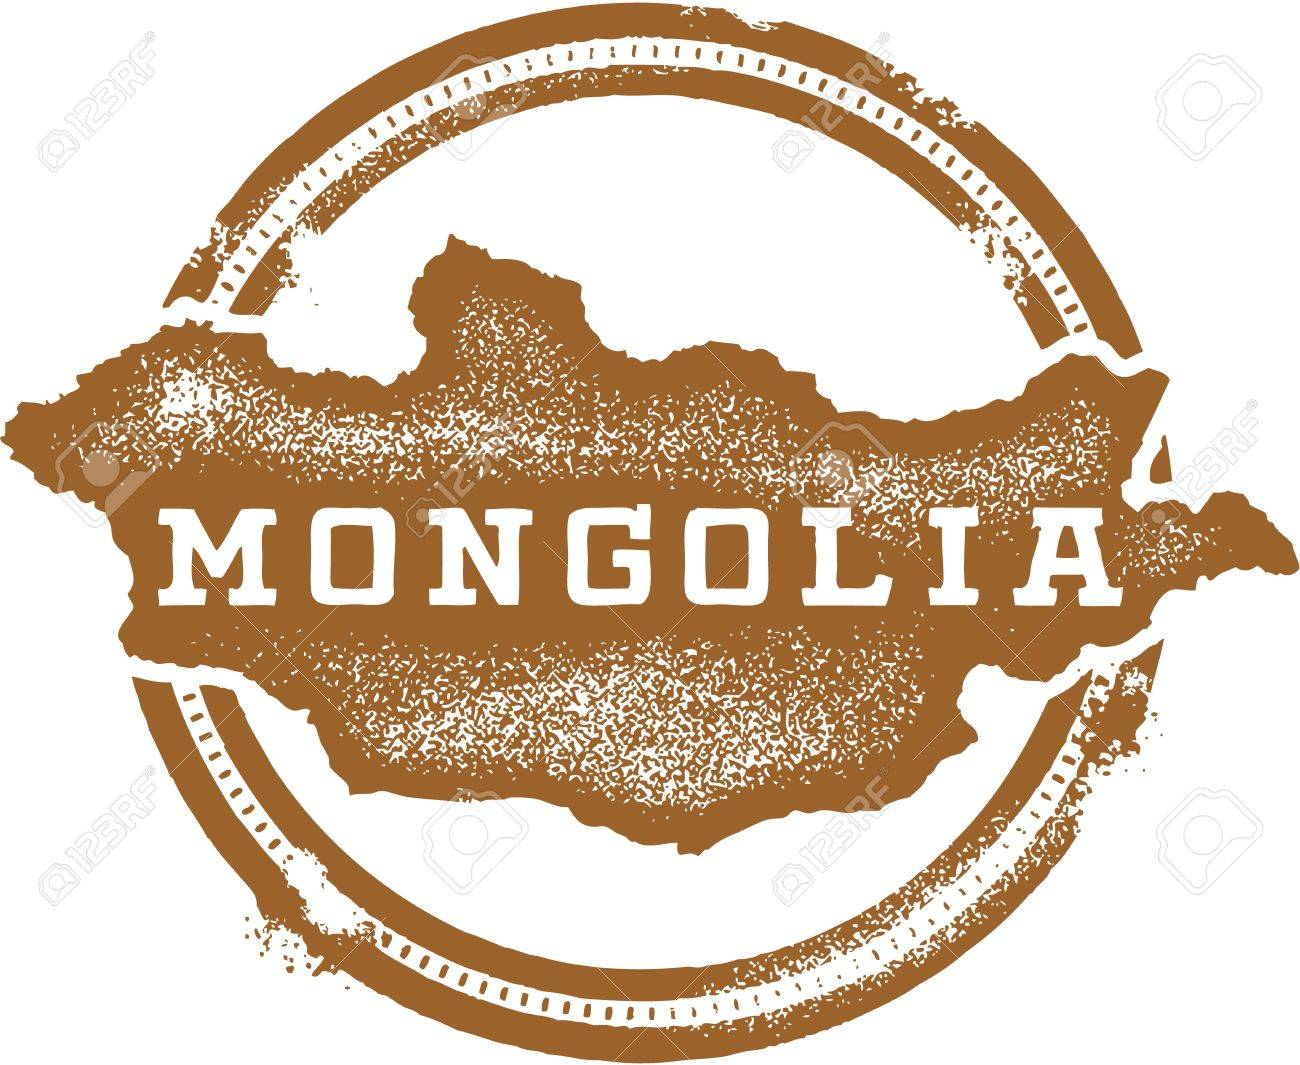 Mongolia Asia Country Stamp Stock Vector - 20341478